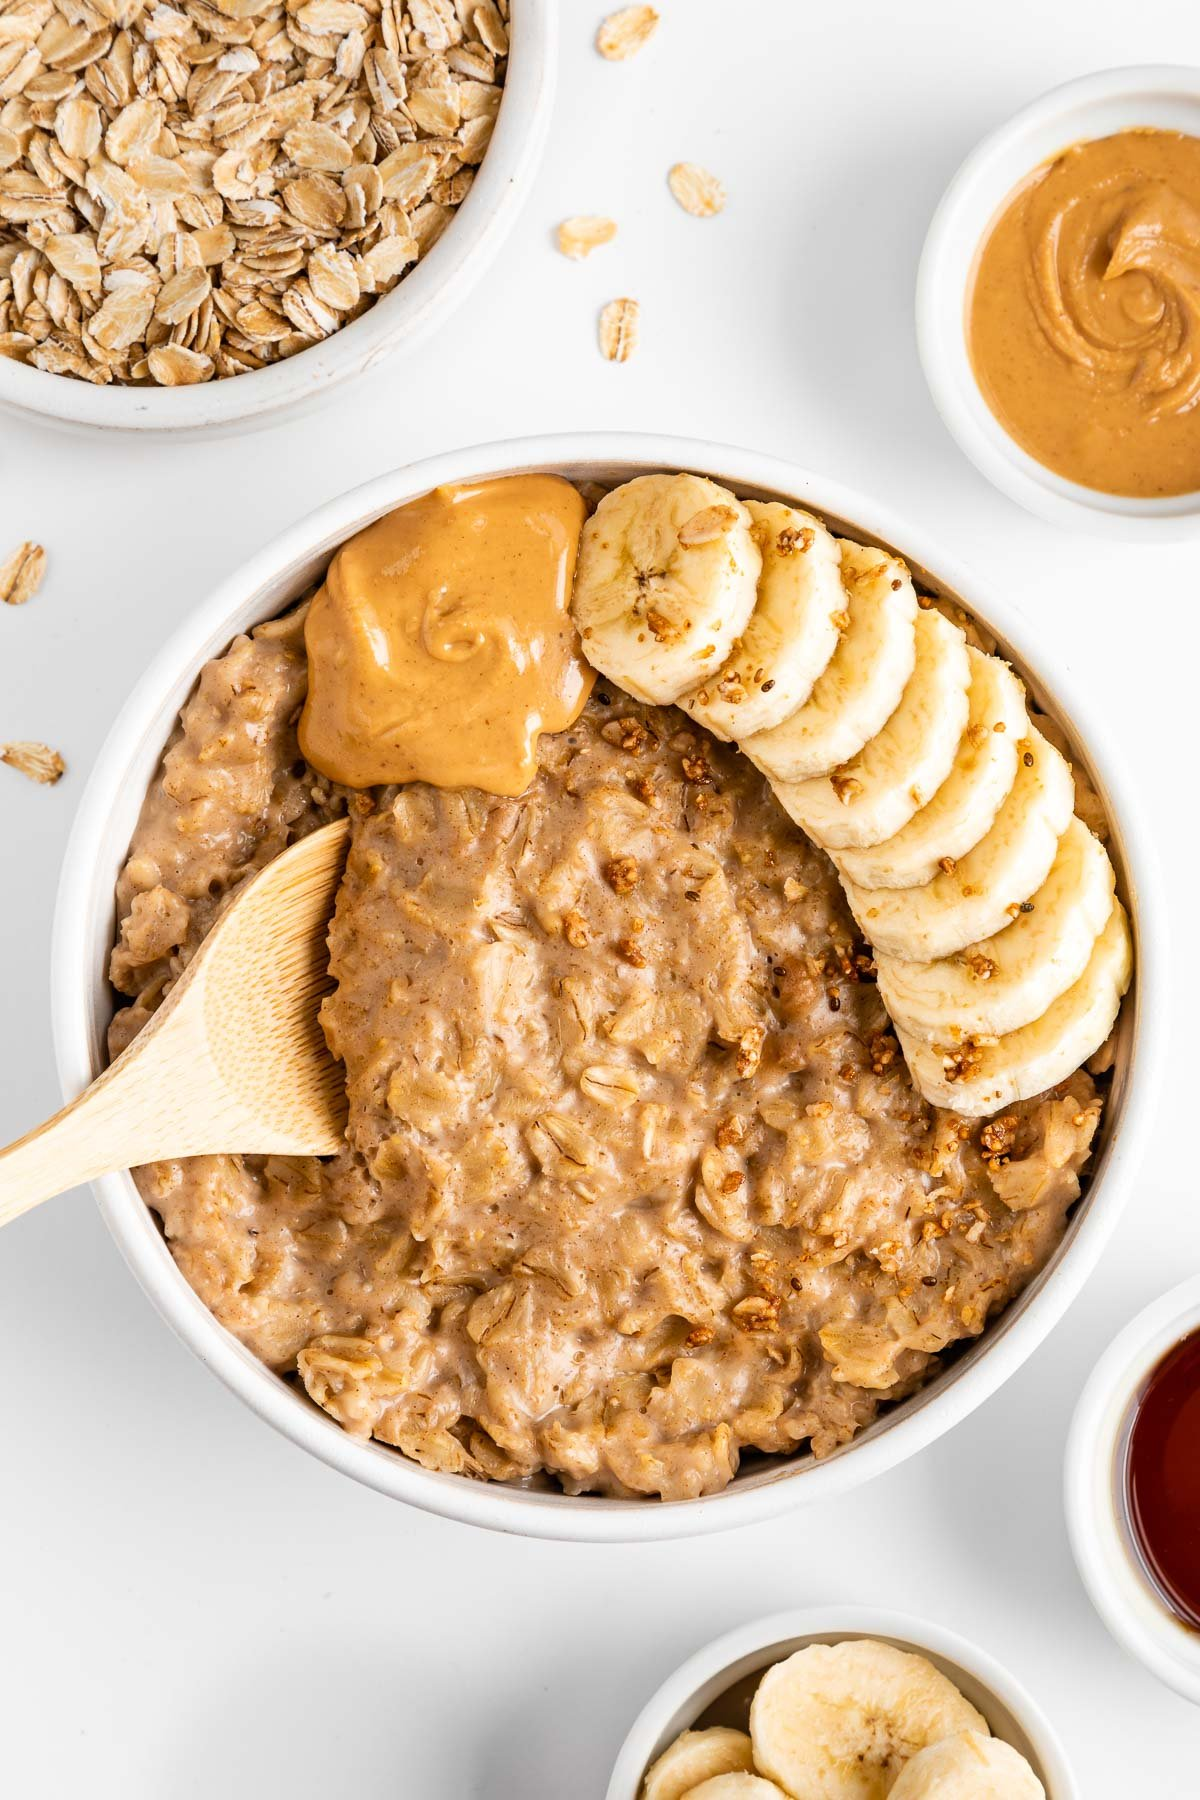 a wooden spoon scooping peanut butter oatmeal out of a bowl